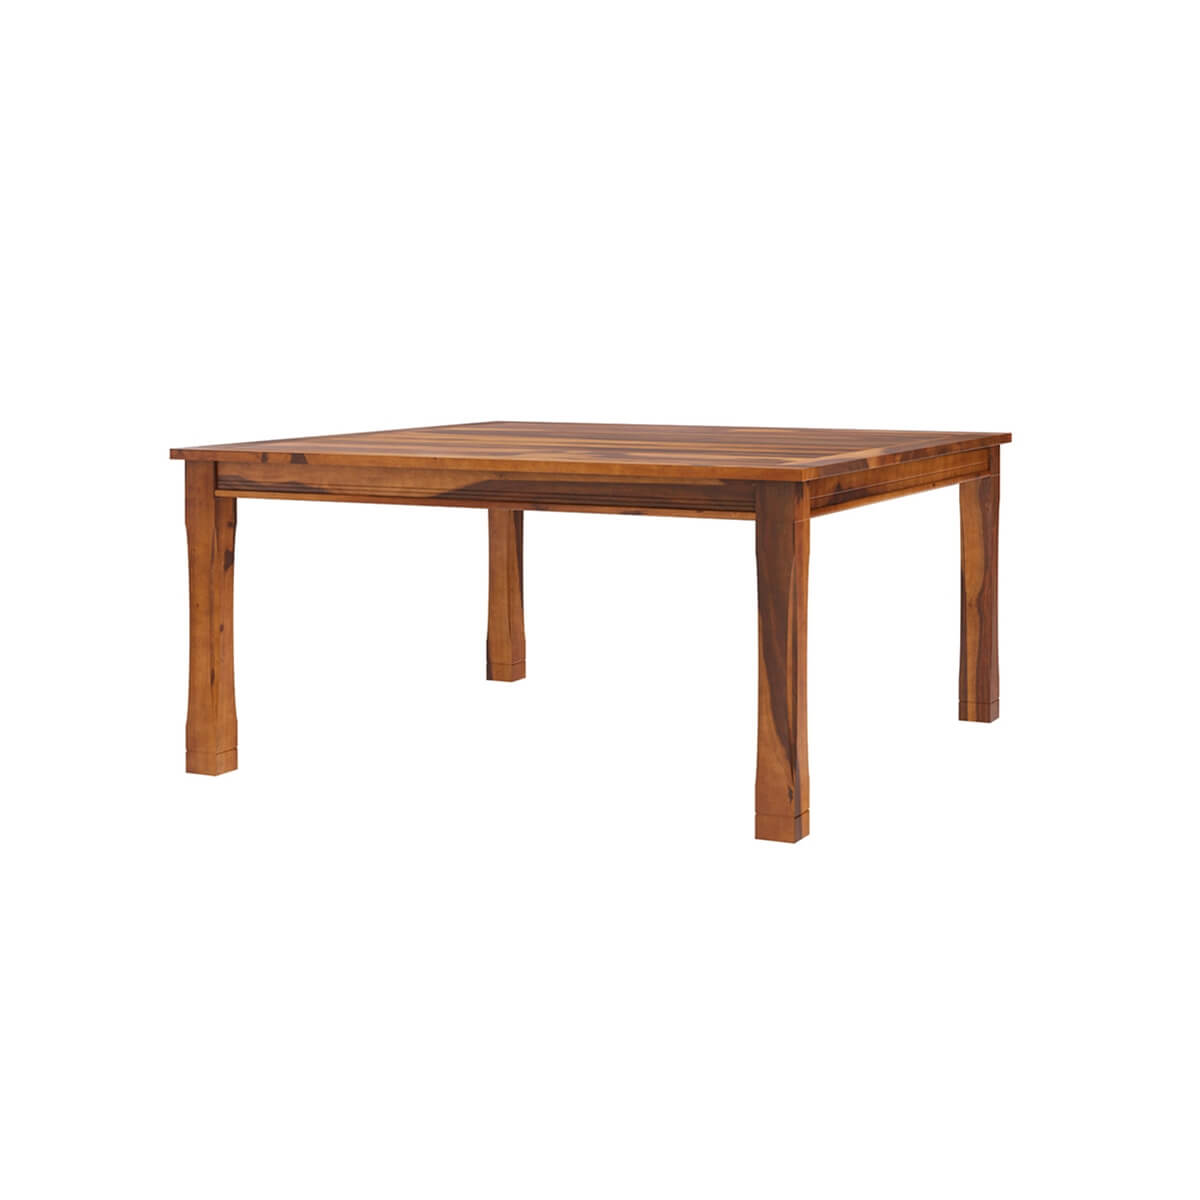 8 Person Square Dining Table: Dallas Ranch Transitional Square Wood Dining Room Table For 4 People